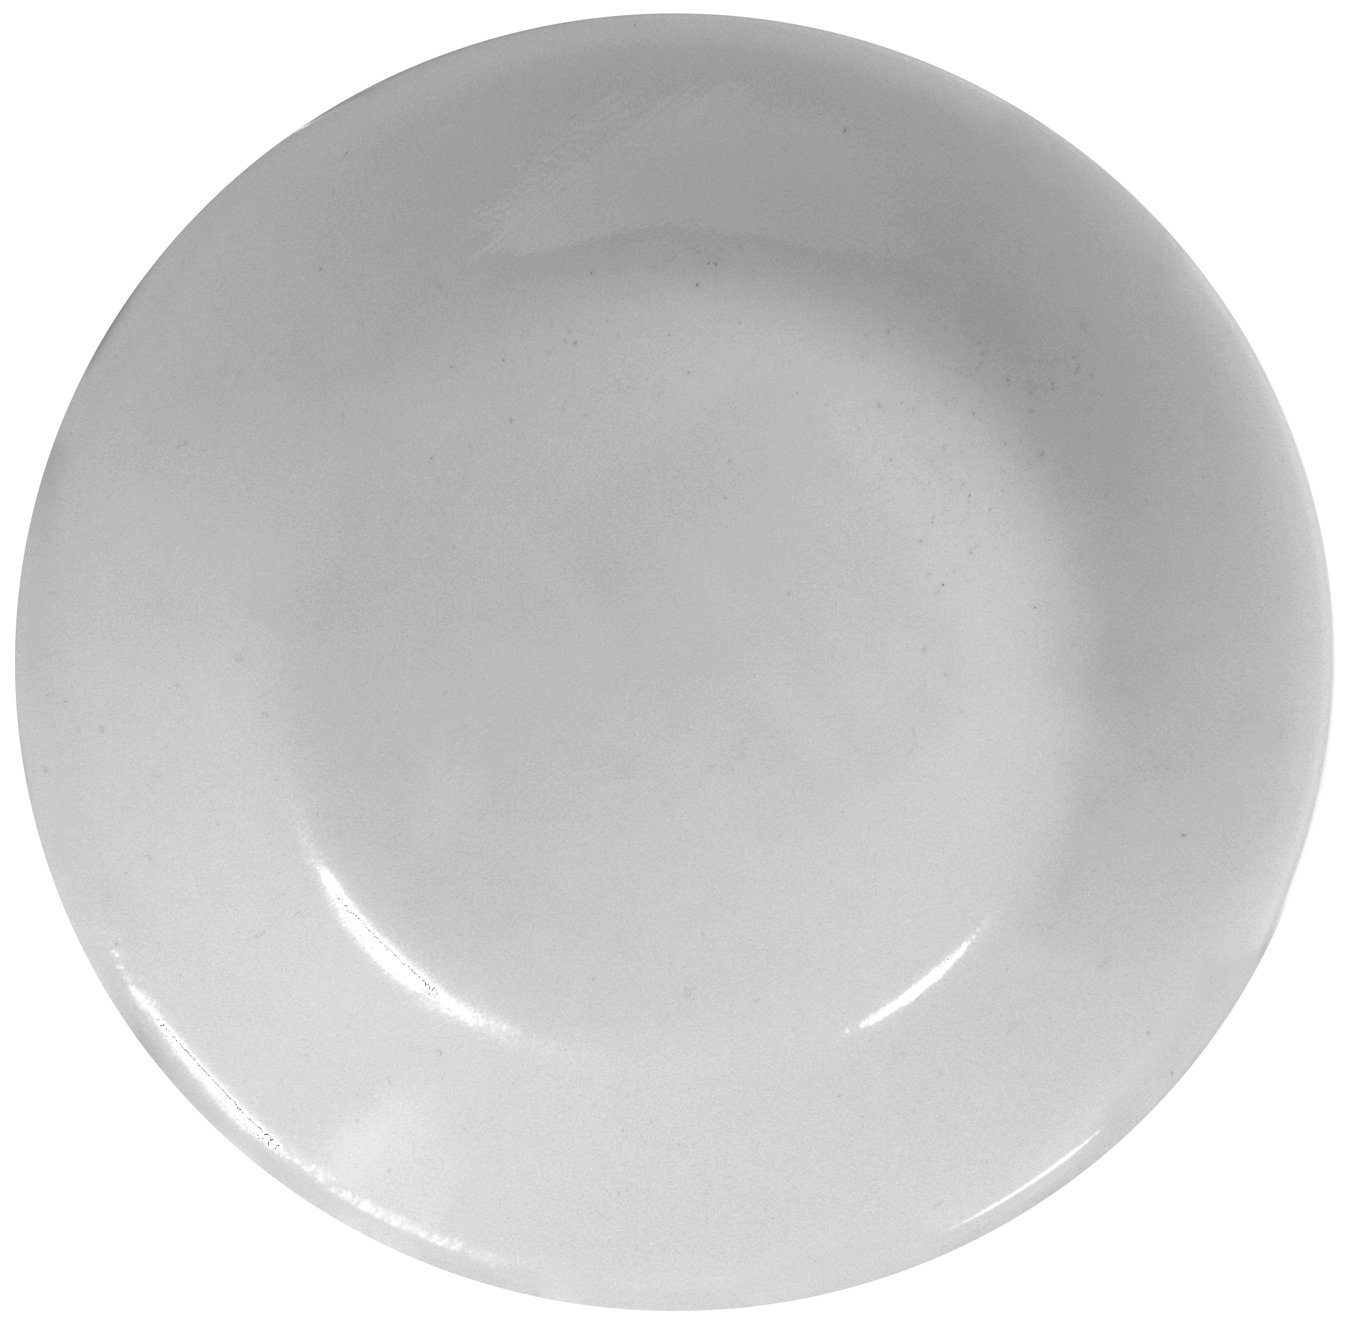 Corelle Livingware Bread and Butter Plate Winter Frost White Size: 6-3/4-Inch 6003887